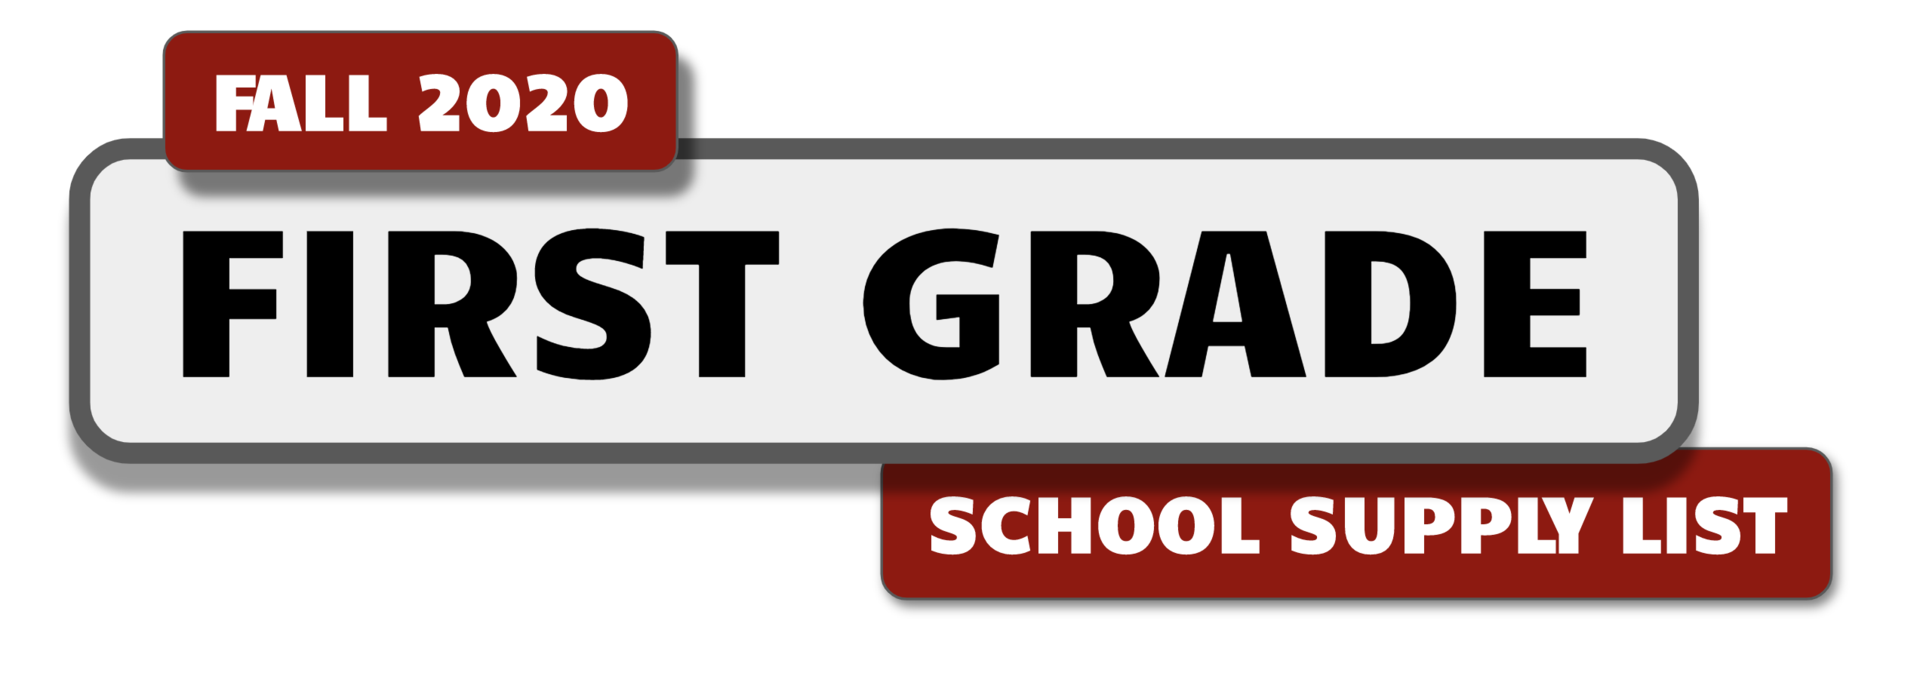 Banner with message: First Grade School Supply List for Fall 2020